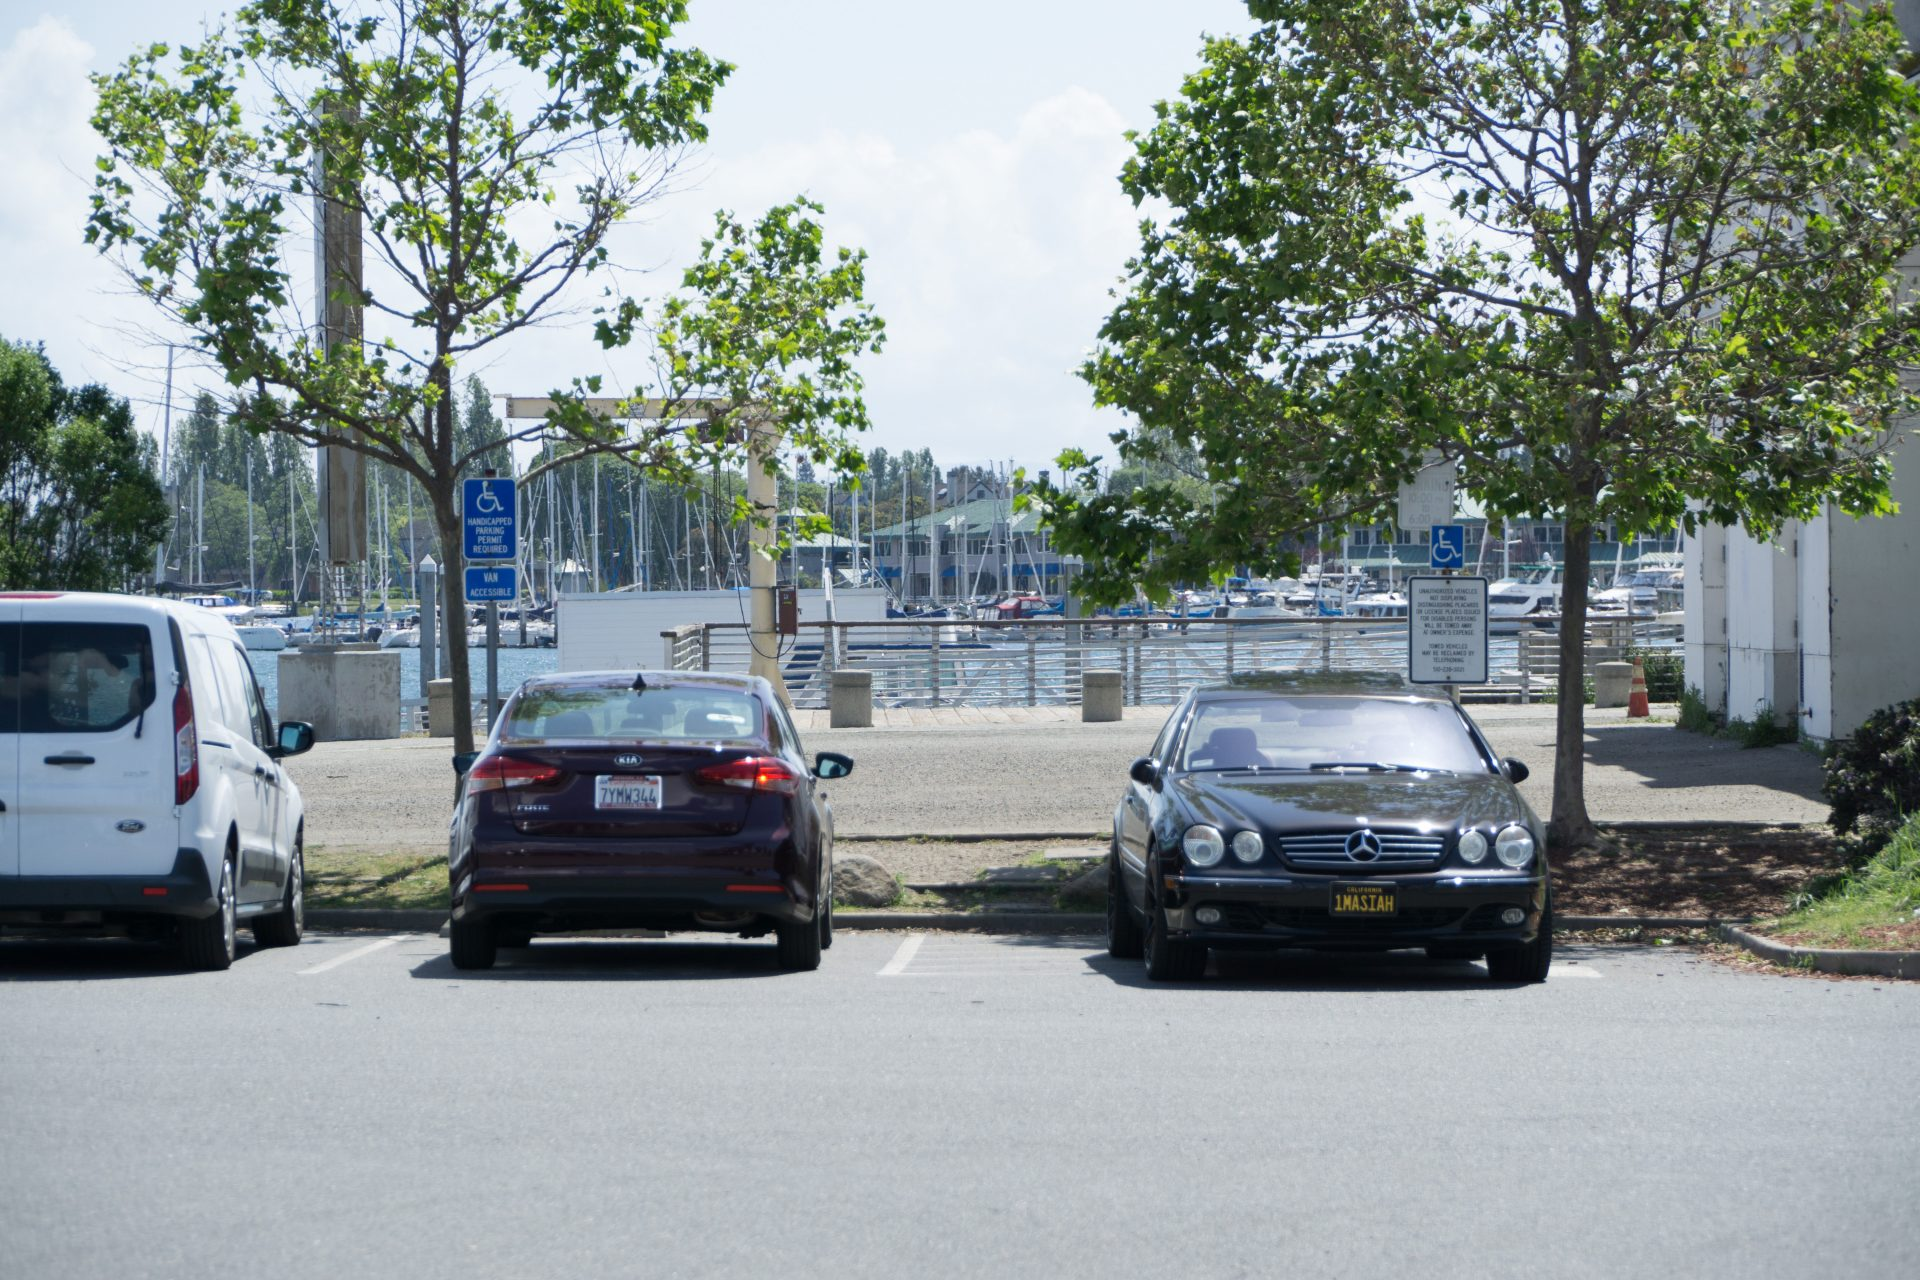 parking lot, two accessible spaces with cars parked